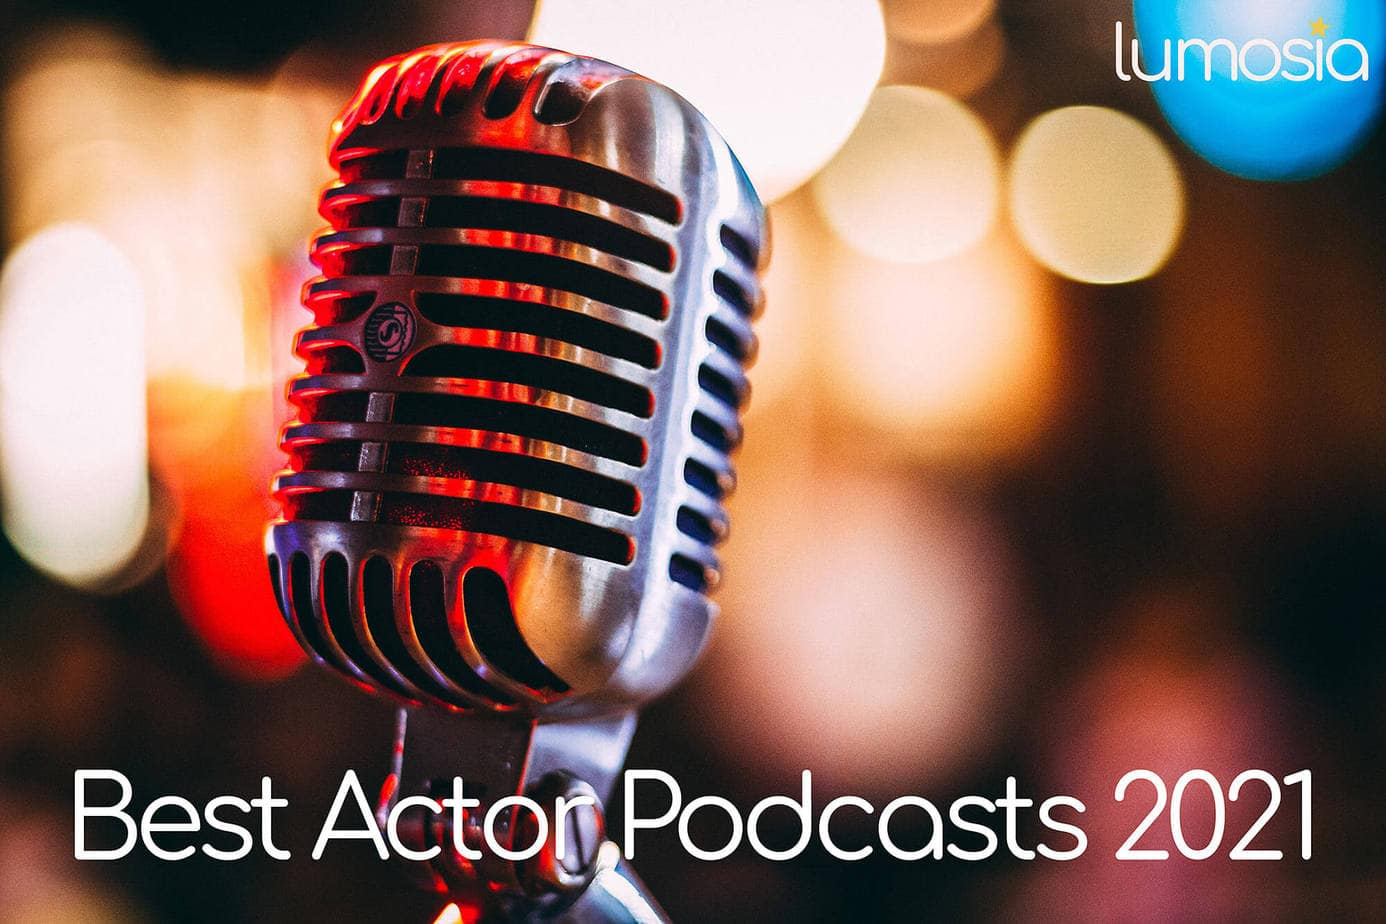 Best Actor Podcasts 2021